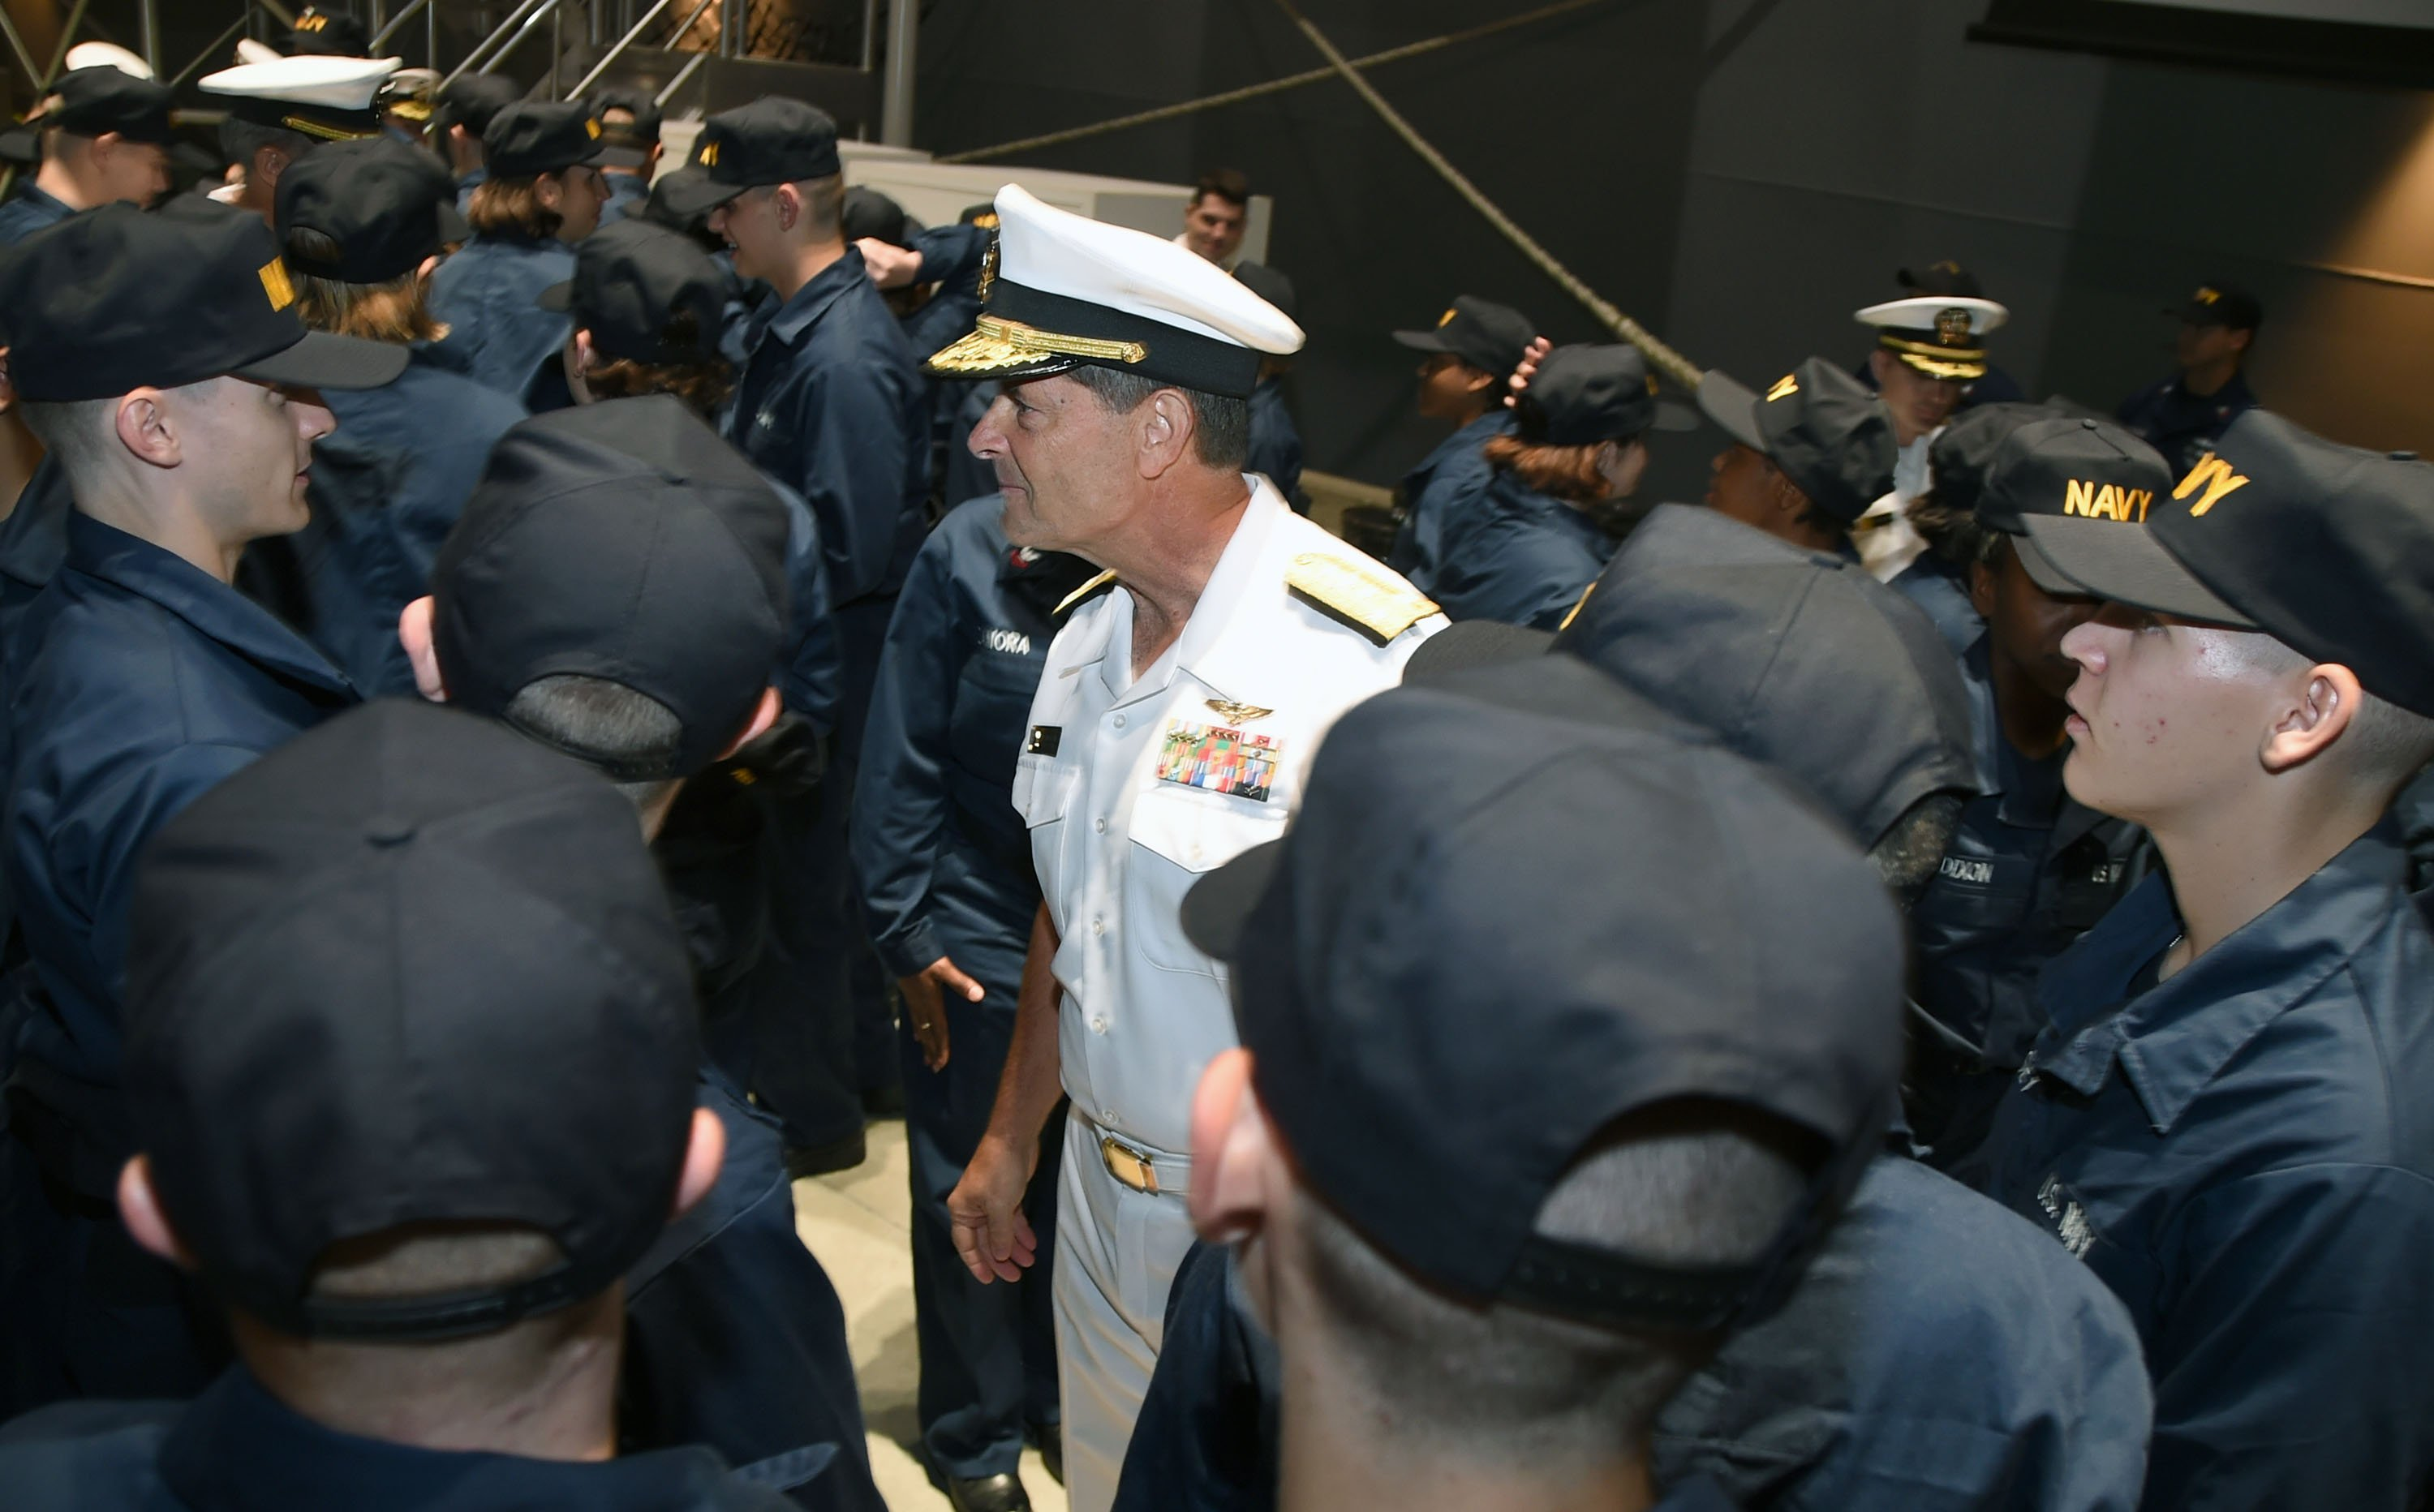 Navy officer blog